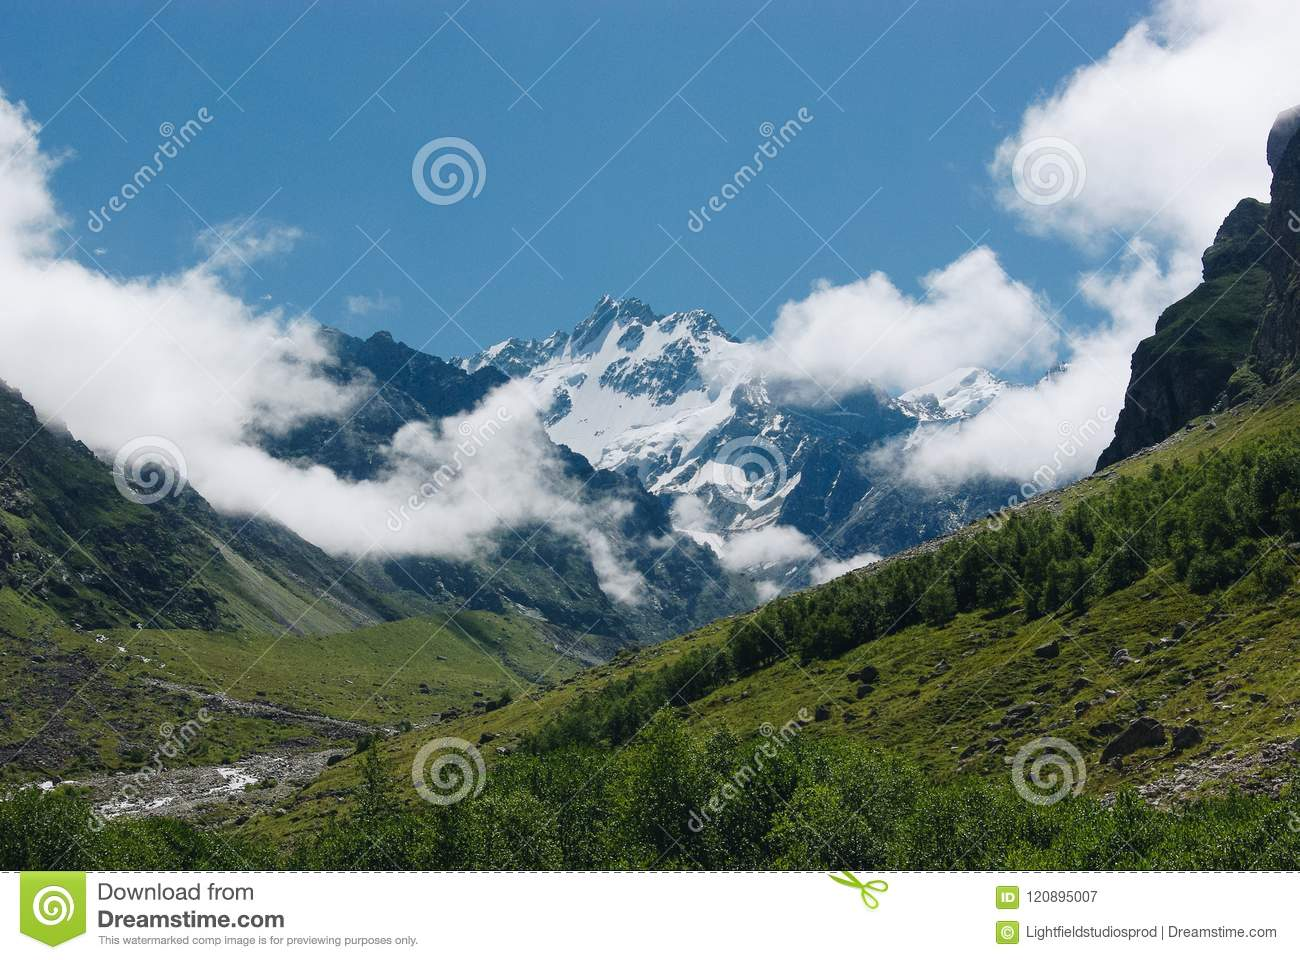 amazing view of mountains landscape with snow, Russian Federation, Caucasus,